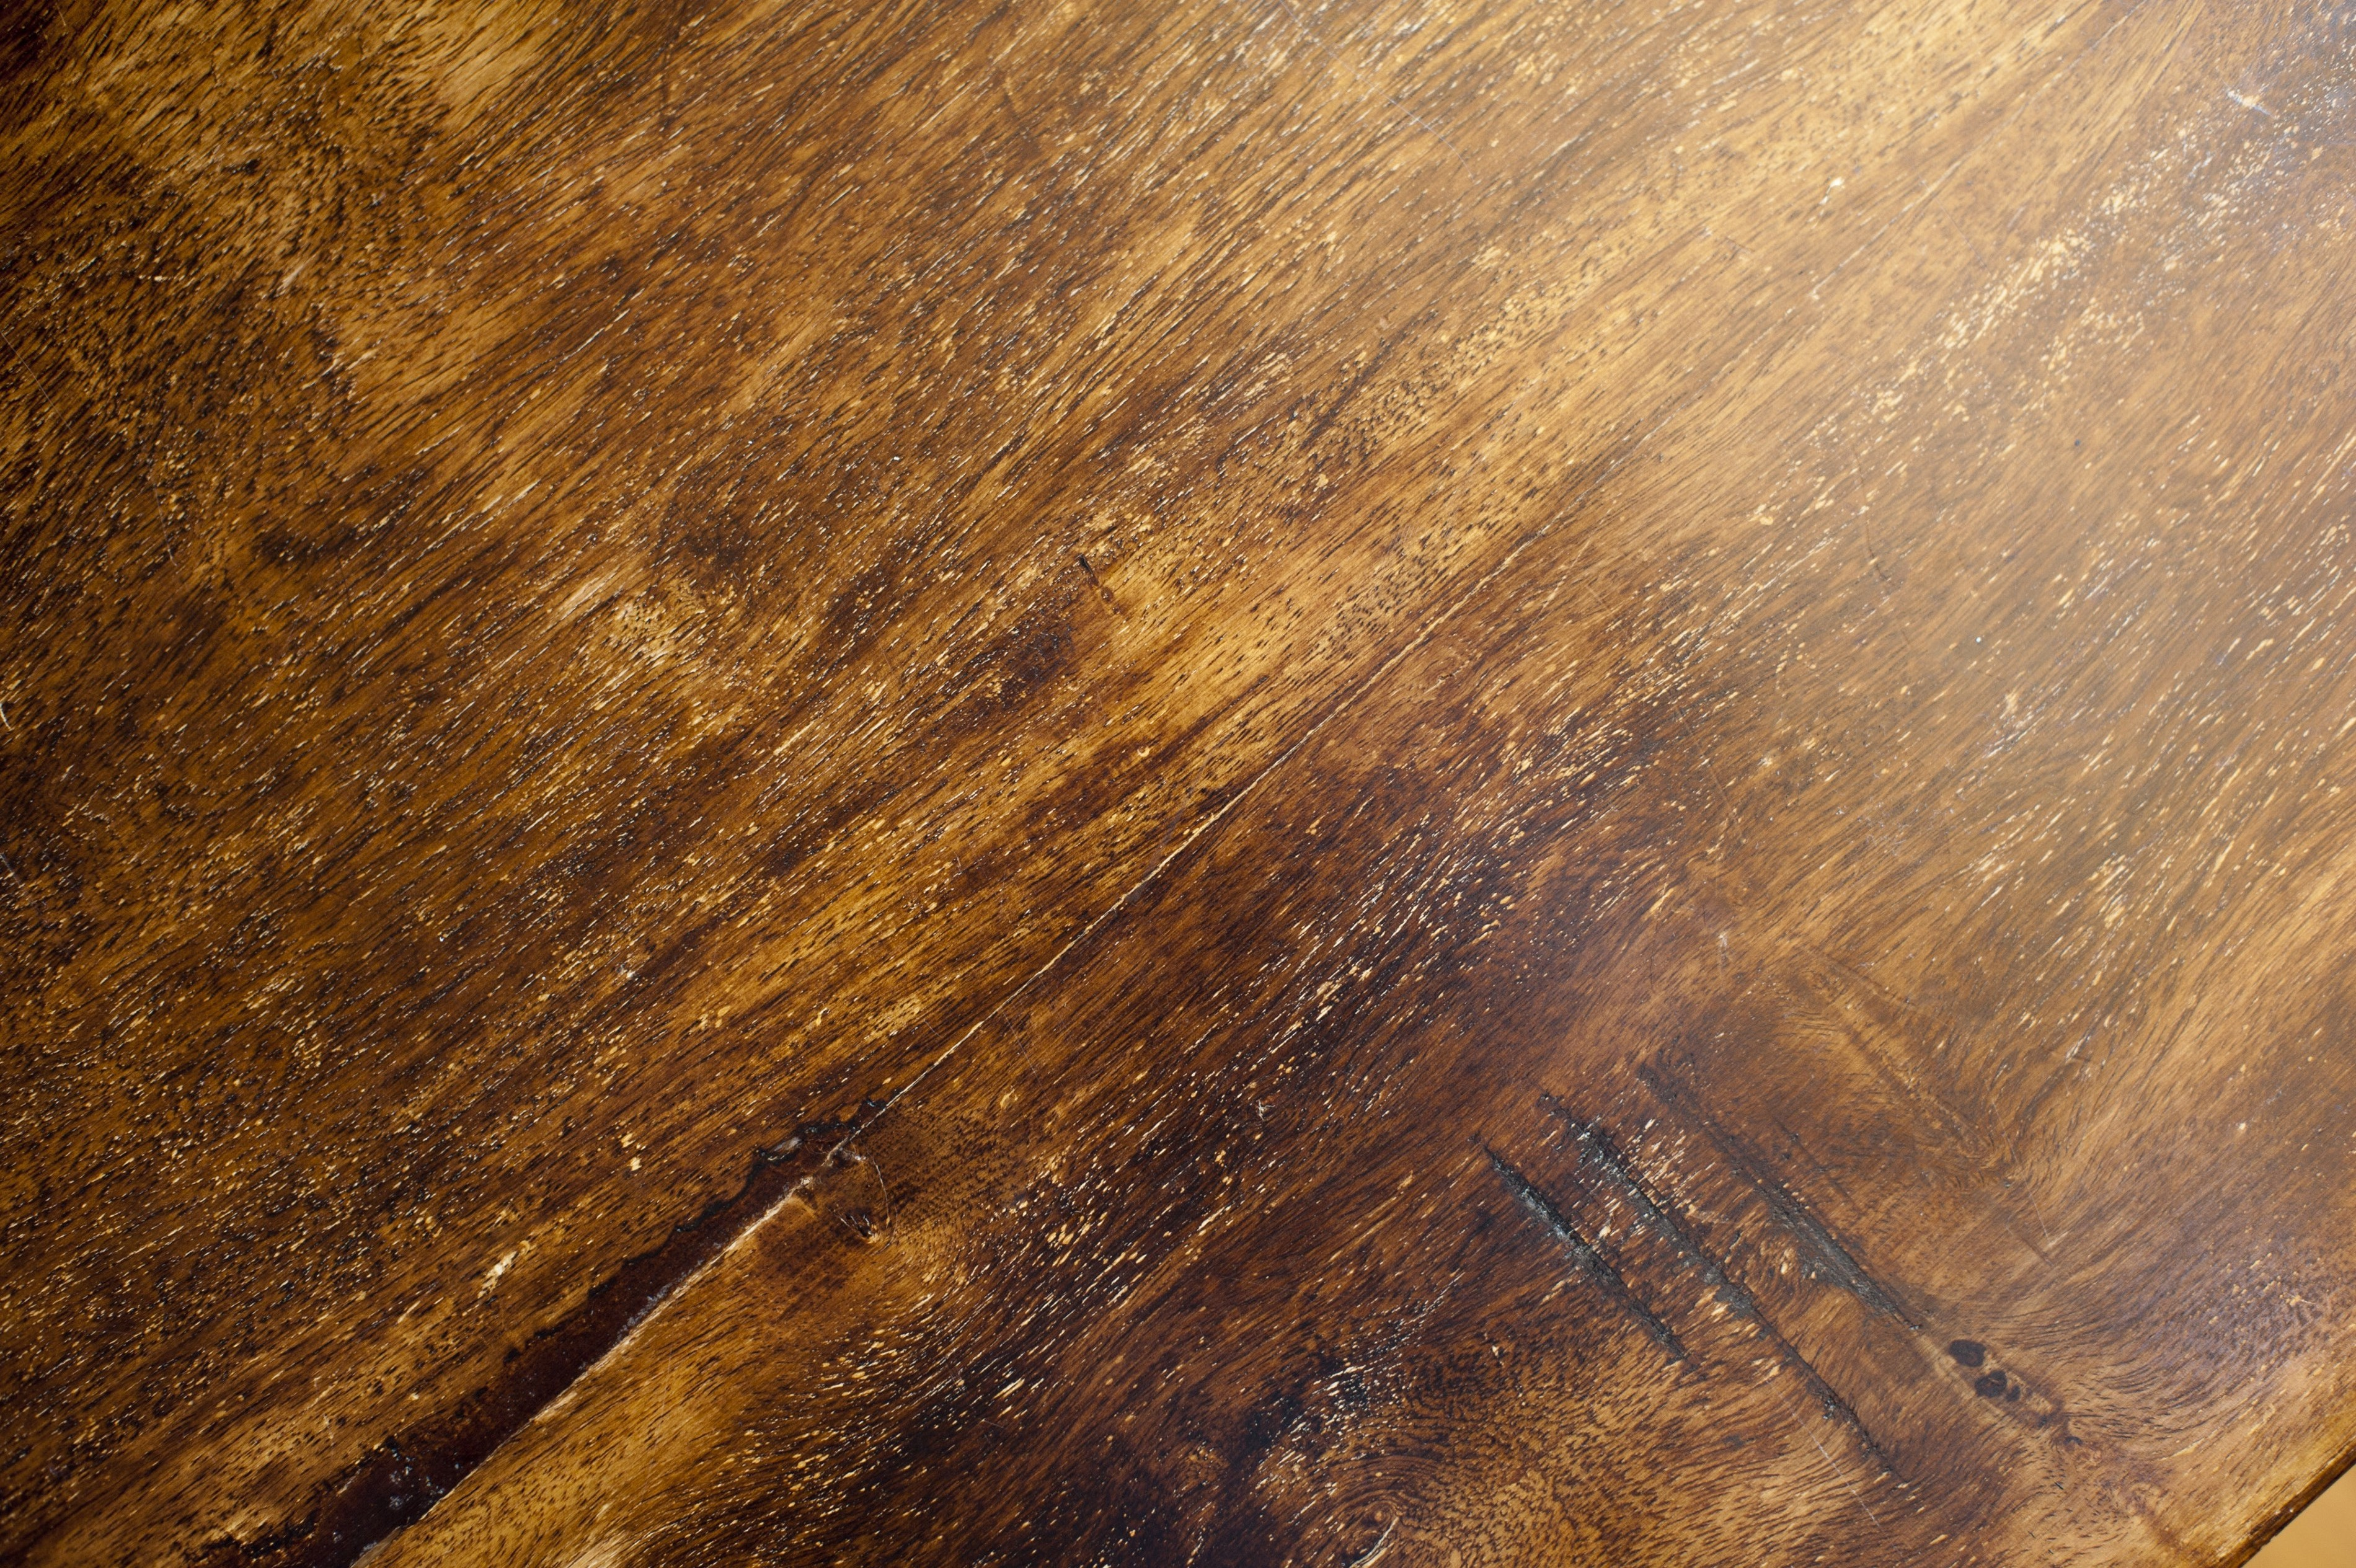 hardwood grain | Free backgrounds and textures | Cr103.com